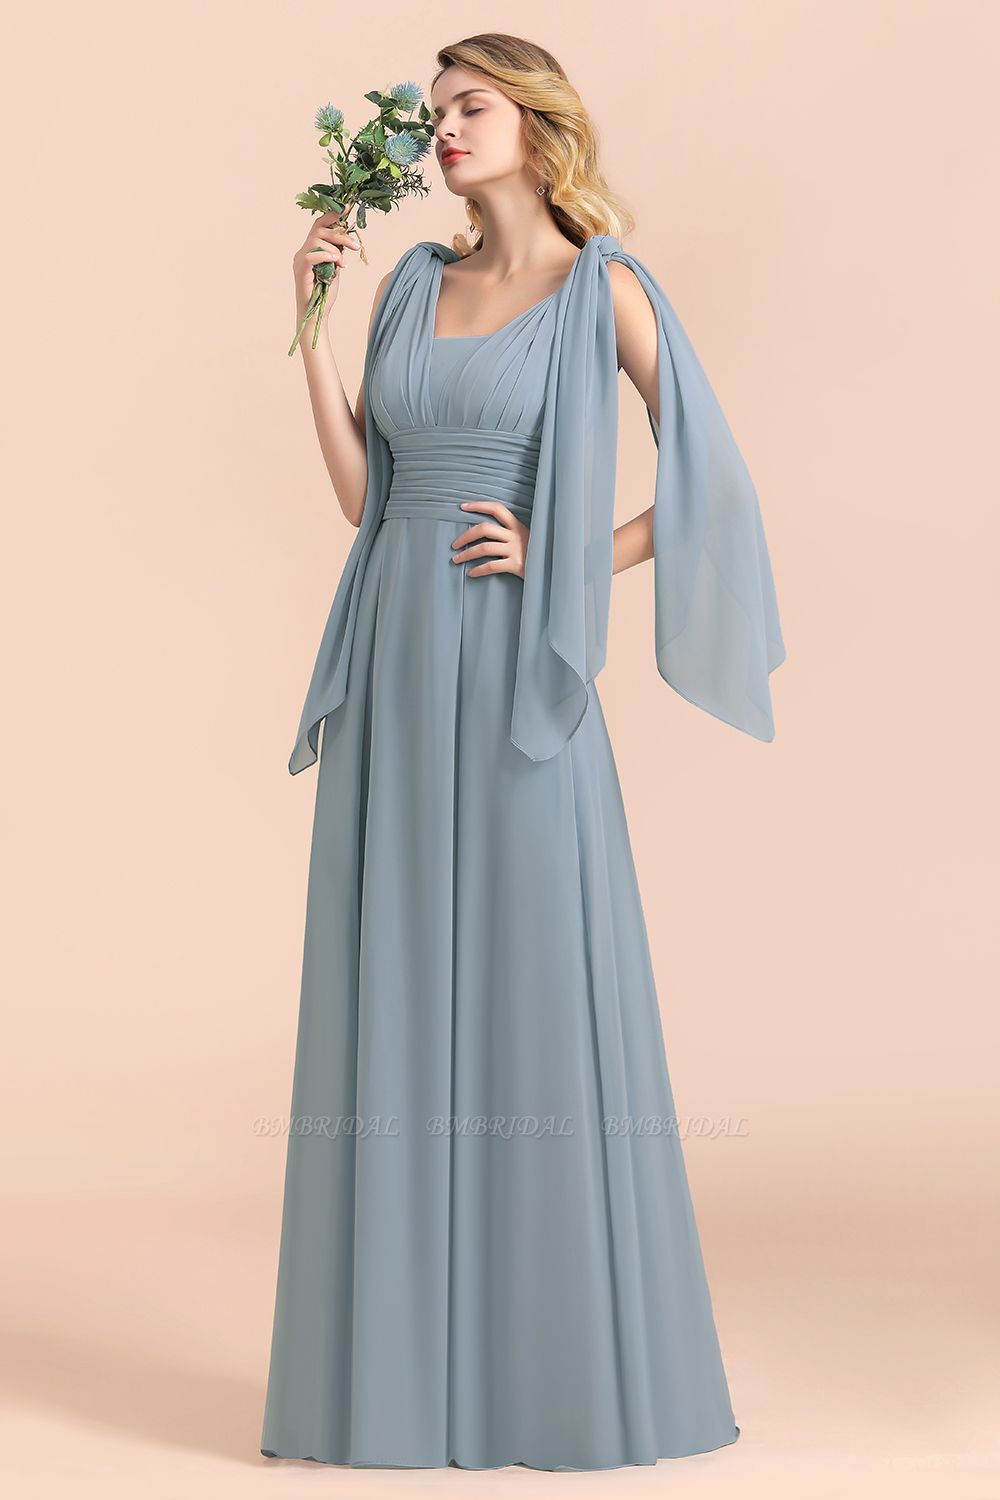 Affordable Dusty Blue Ruffle Convertible Bridemsiad Dress